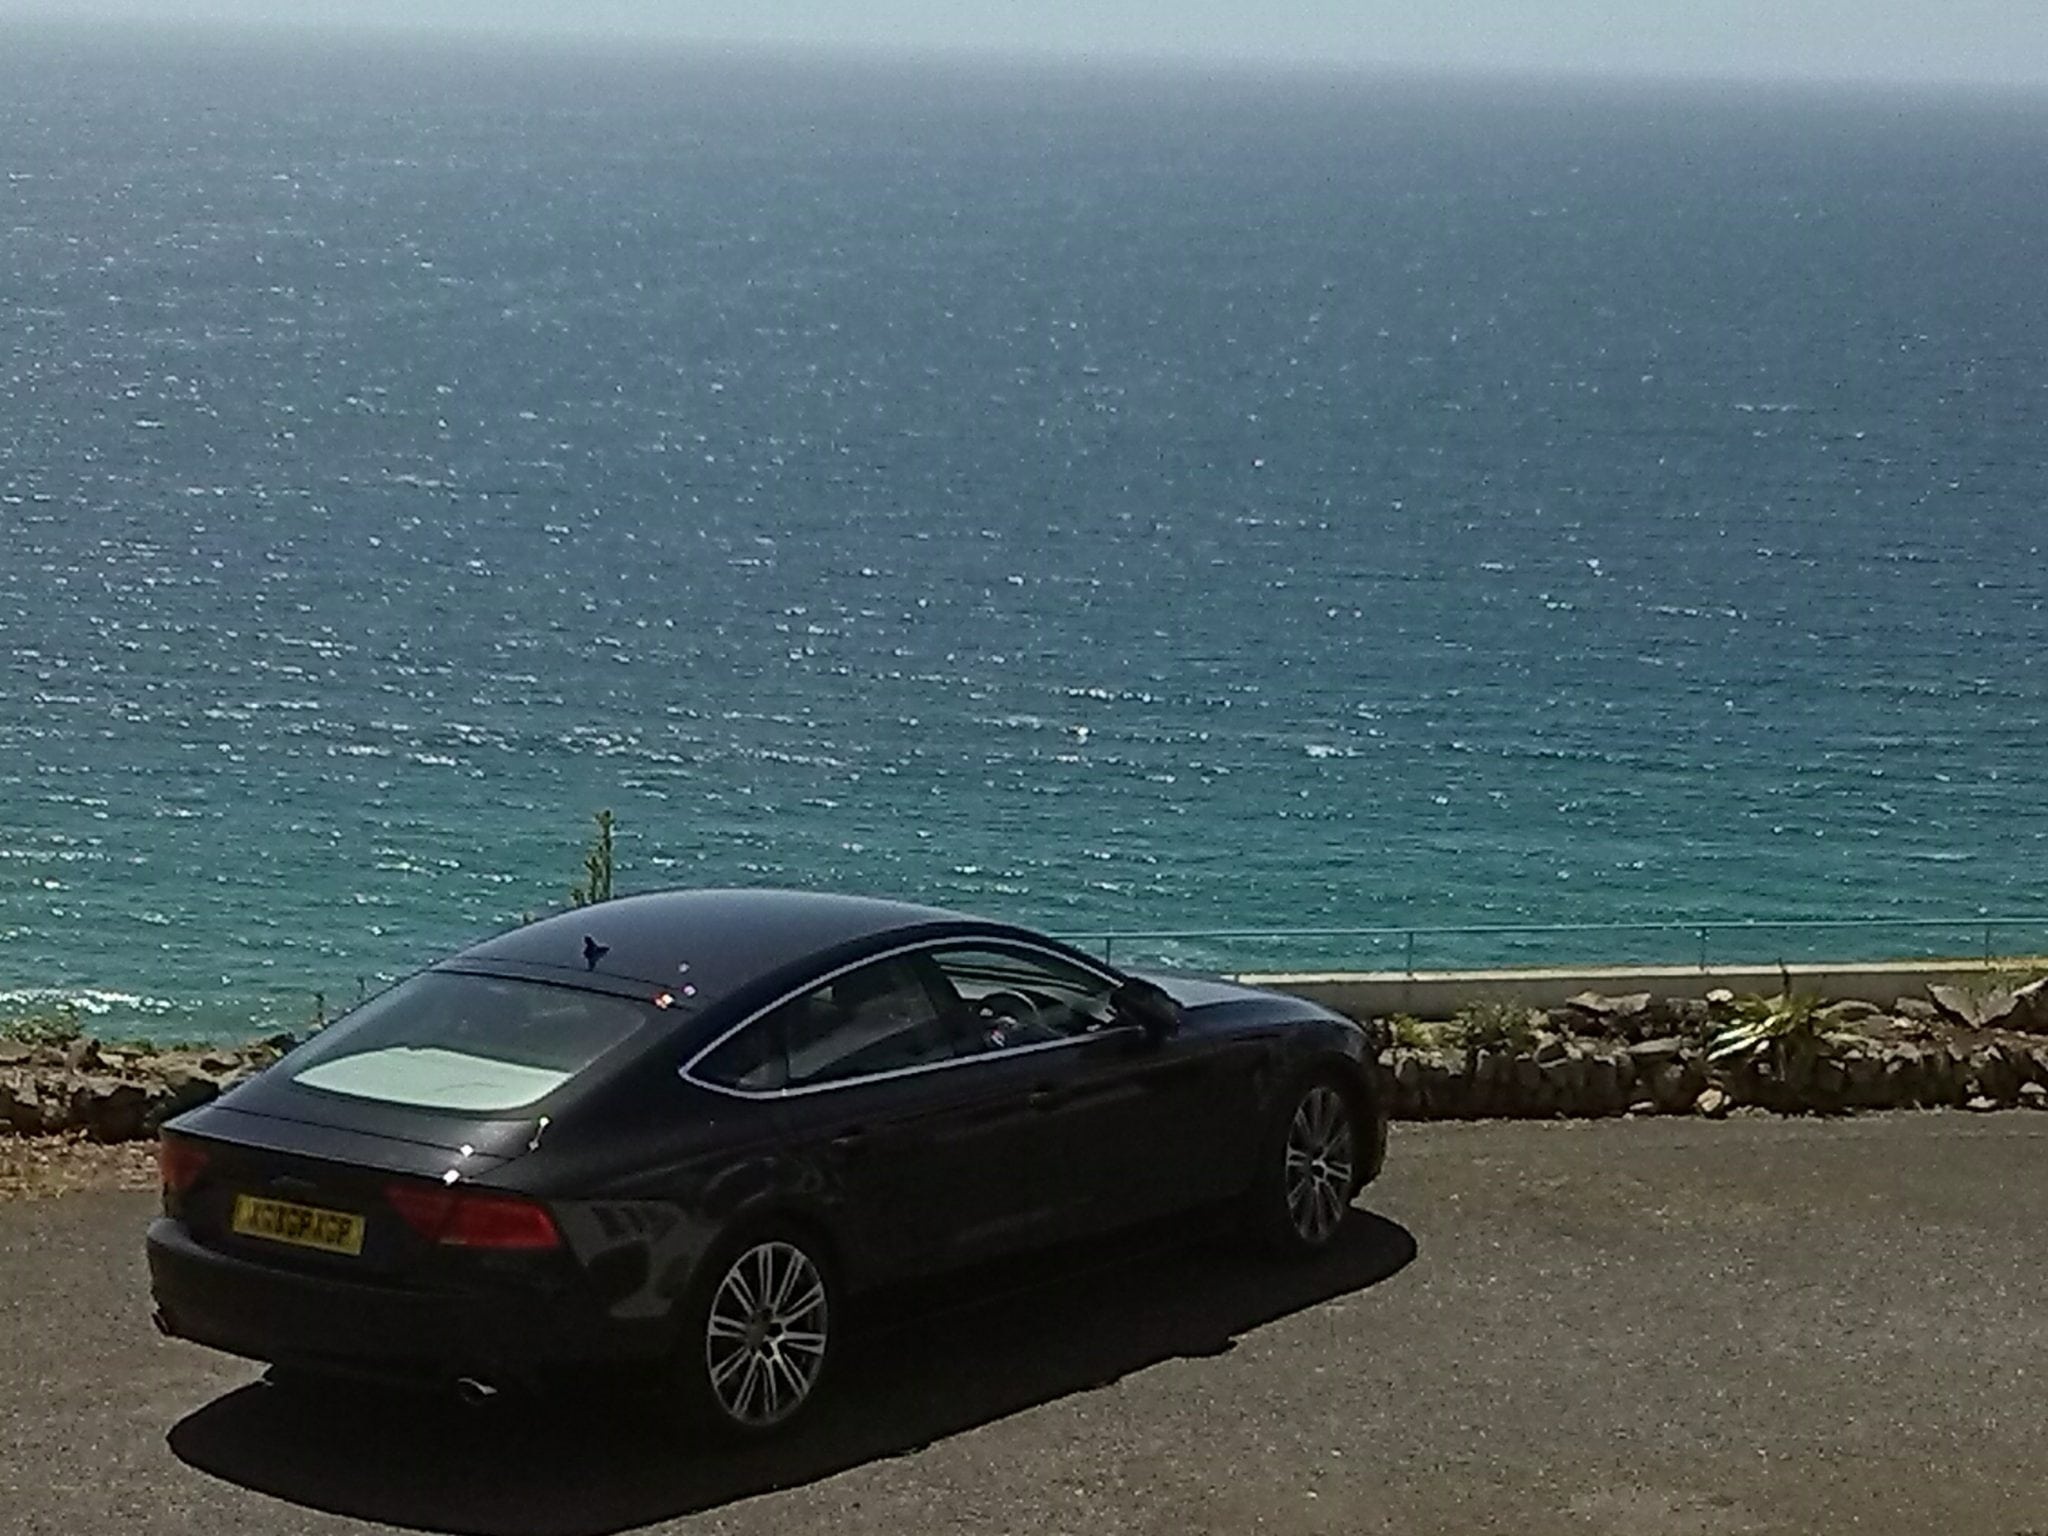 Car Hire In Cornwall For Your St Ives Holiday Including Taxi Services